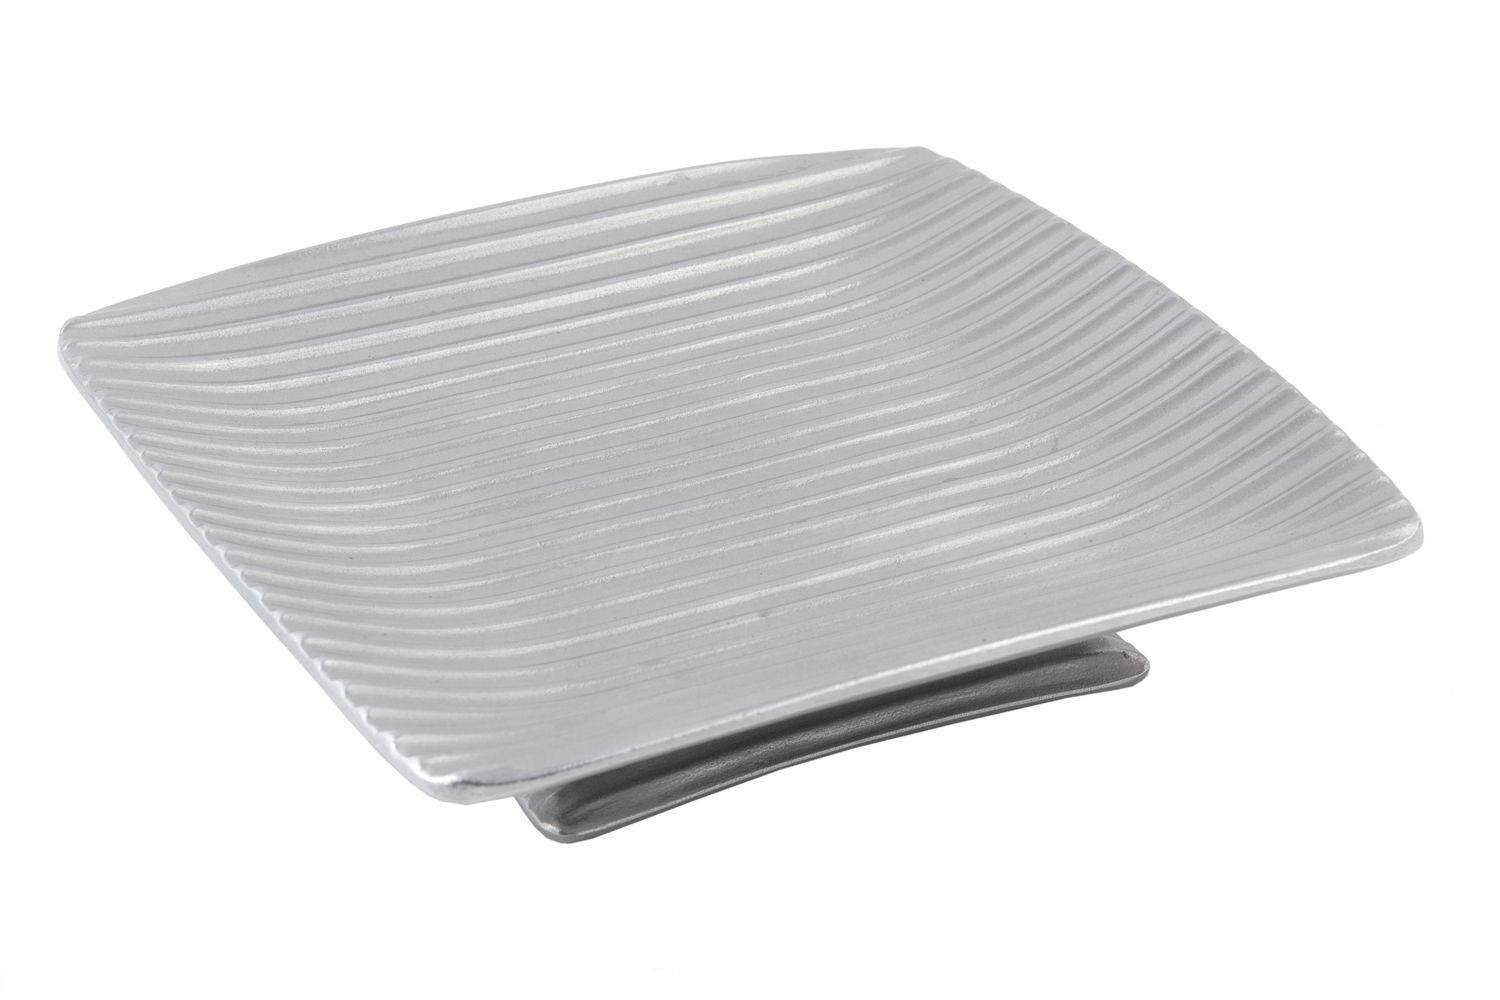 "Bon Chef 99189920P Footed Ribbed Platter, Pewter Glo 10"" x 10"" x 1"""